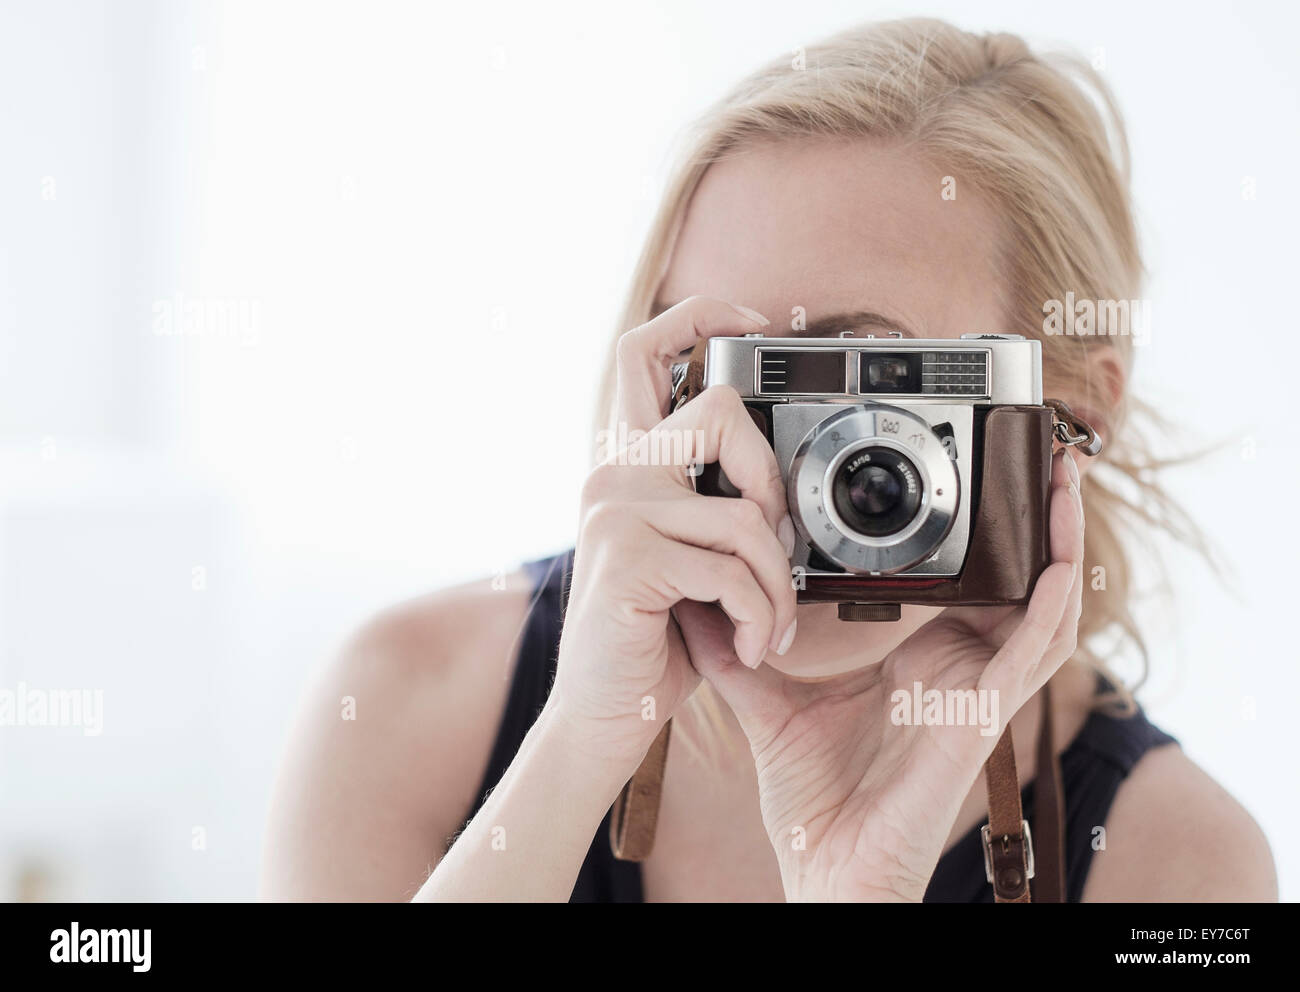 Woman taking photo avec appareil photo numérique Photo Stock